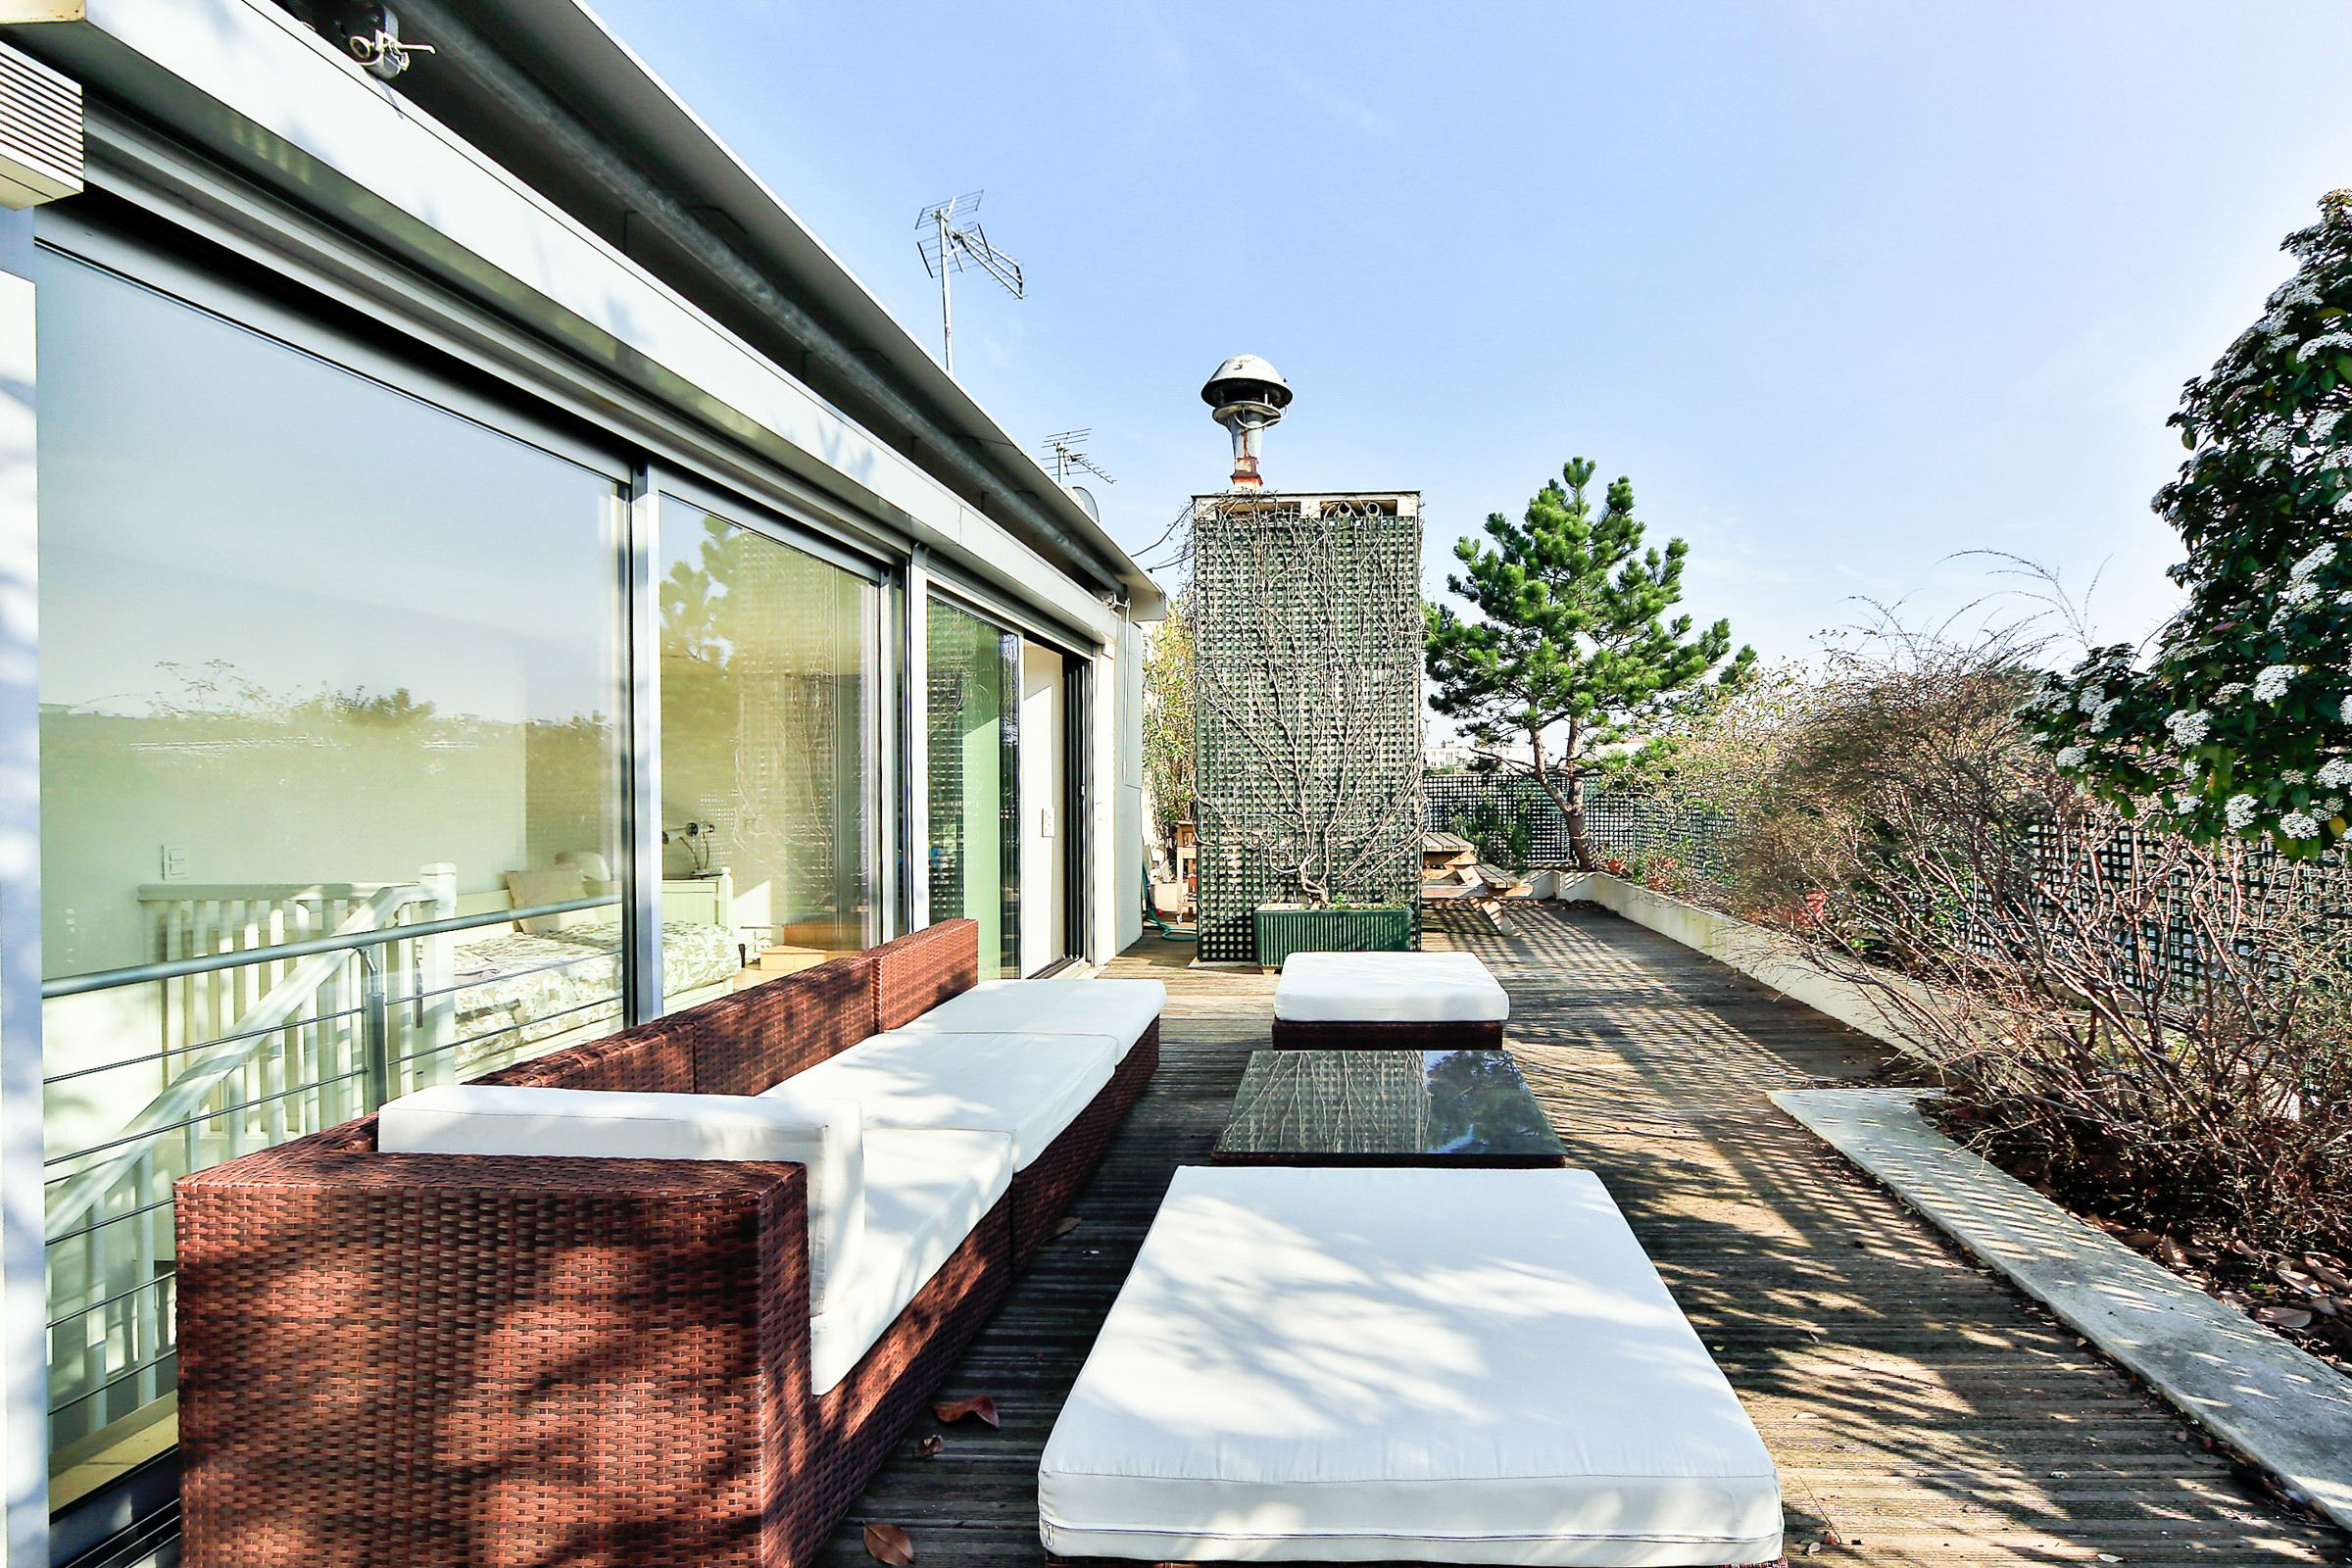 Property For Sale at Neuilly - Longchamp - Penthouse of 201 sq.m + landscaped terrace of 60 sq.m